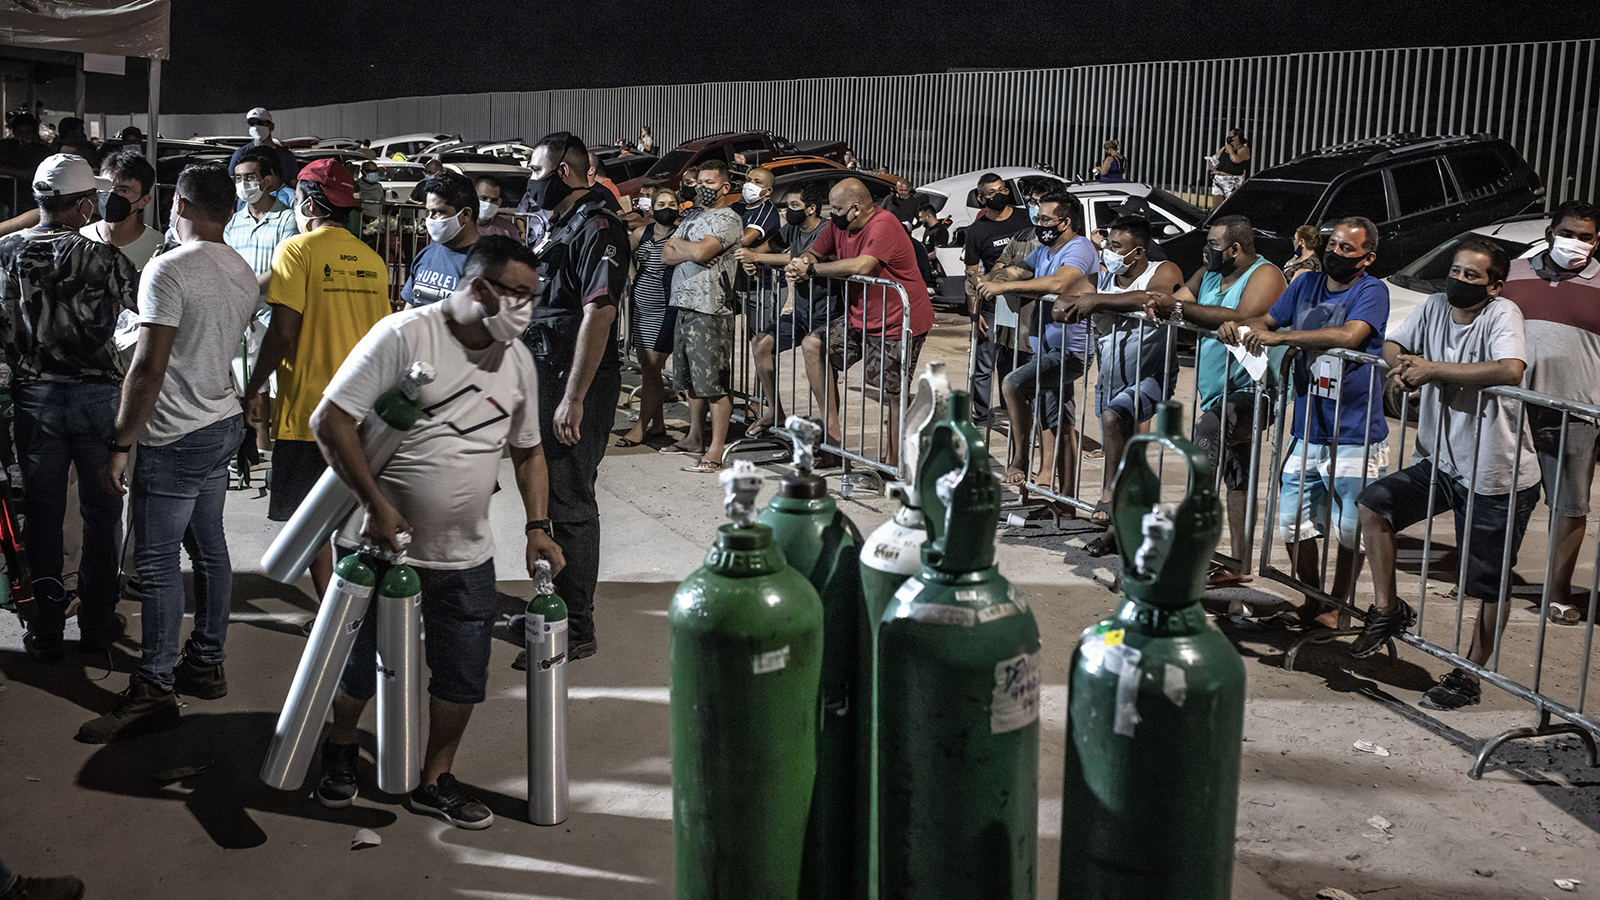 People wearing protective masks wait in line to refill oxygen tanks in Manaus, Brazil, on Sunday, January 17.